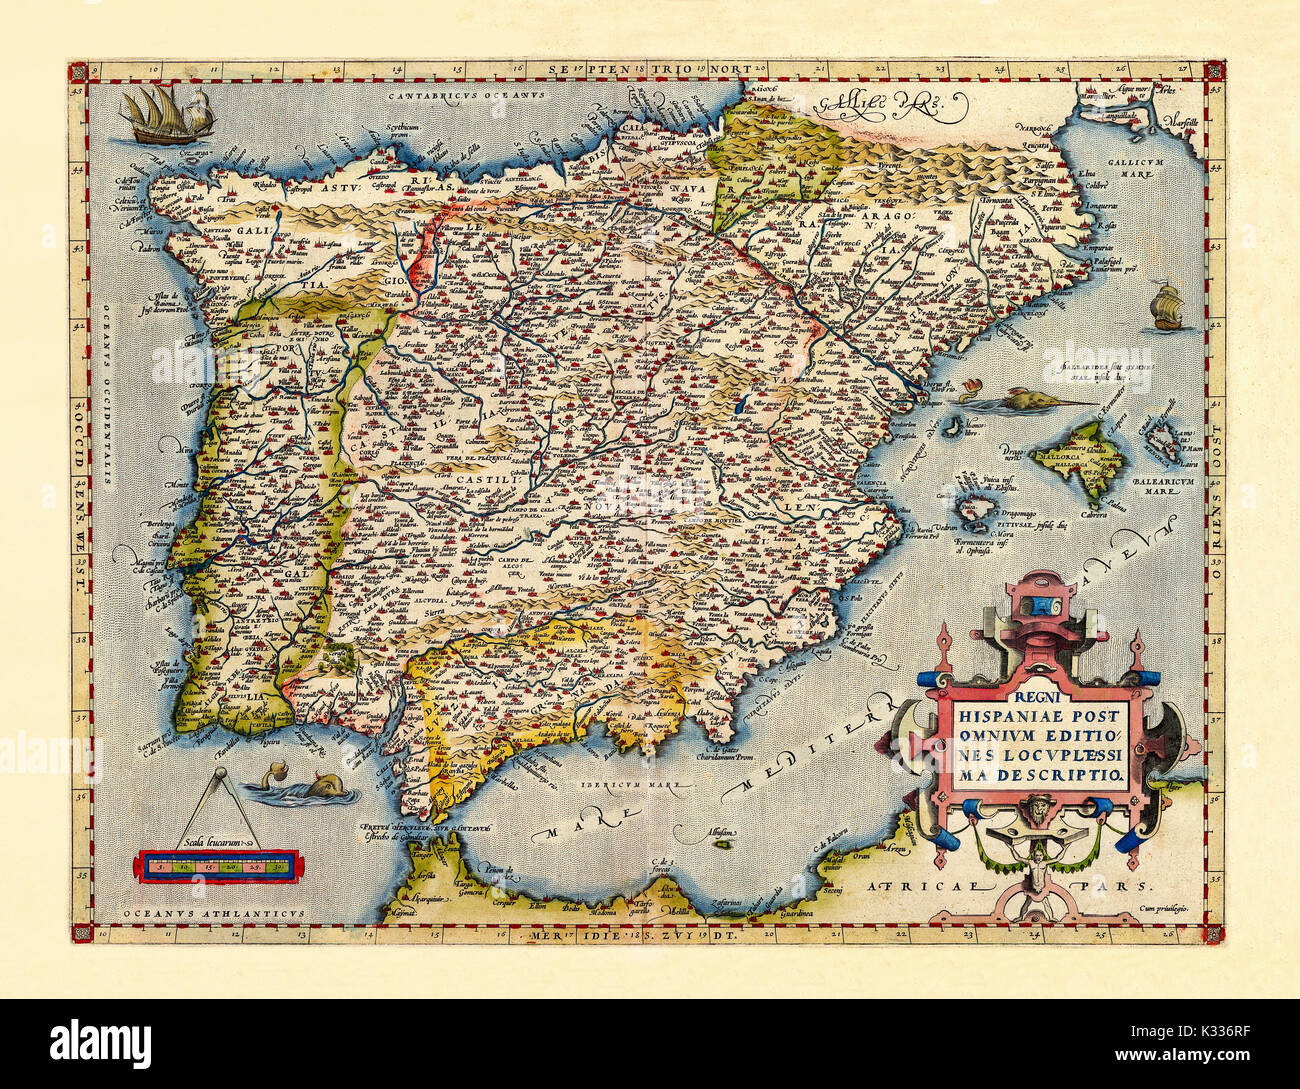 Old map of Iberian peninsula in excellent state of ... La Peninsula Iberica Map on aztlan map, constantinople map, rias baixas map, mallard lake charlotte nc map, delaware old grounds fishing map, oceano atlantico spain map, castile spain map, spain's agricultural map, the movie el norte map, moors invade spain map, catalonia map,